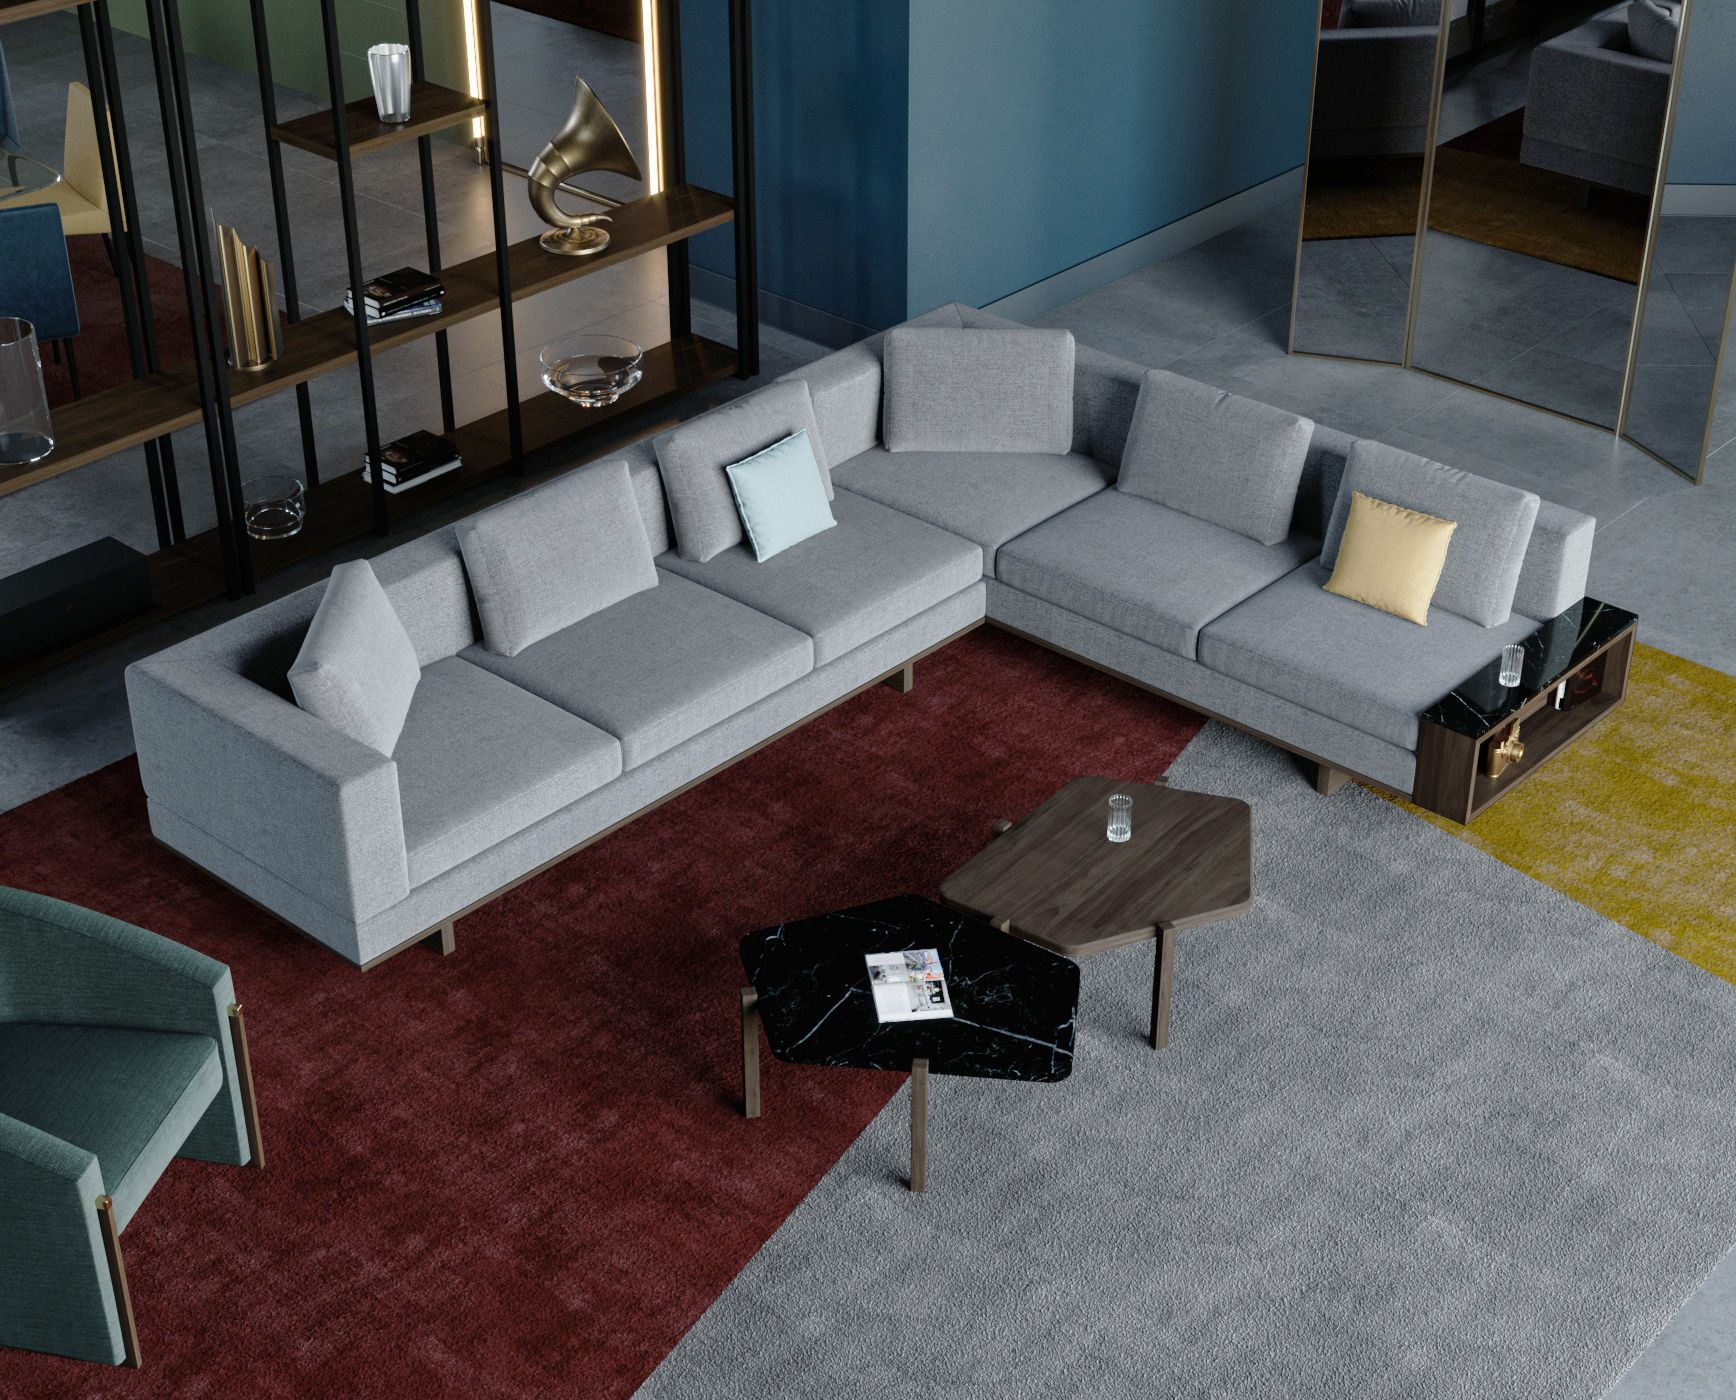 Our Ta Be L Shape Sofa Accompanied By Our Oc Ta Tables And Ar C Armchair Liveyourstyle Furniture Interiordesign Int Furniture Sofa Decor Furniture Design